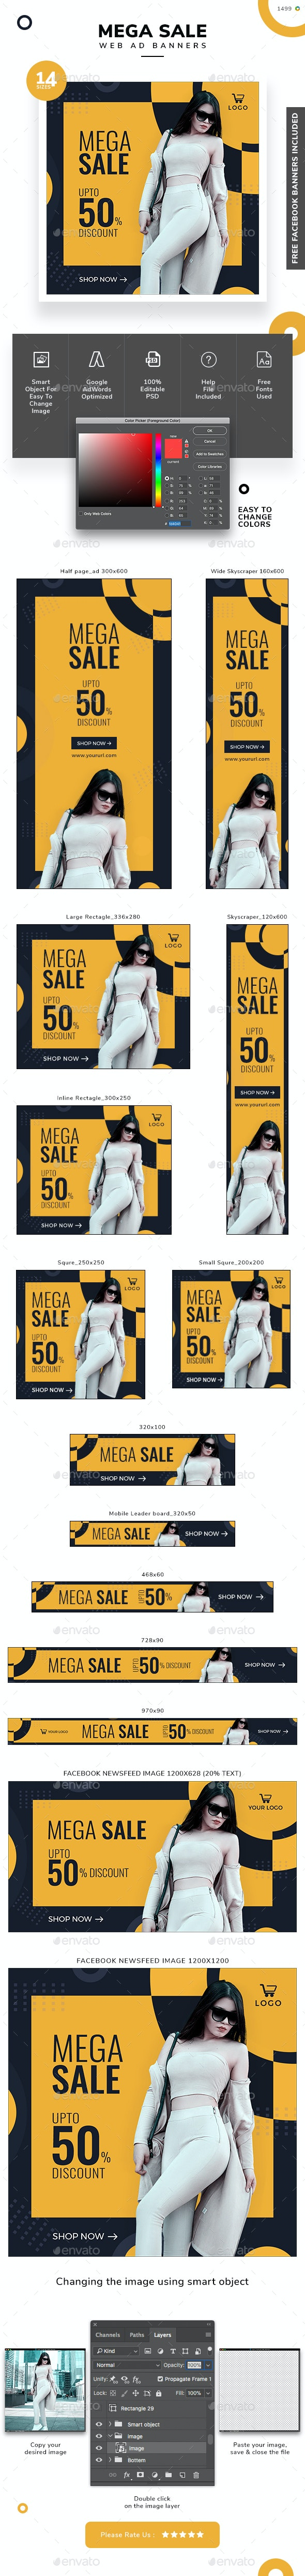 Sale Ad Banner Set - Banners & Ads Web Elements